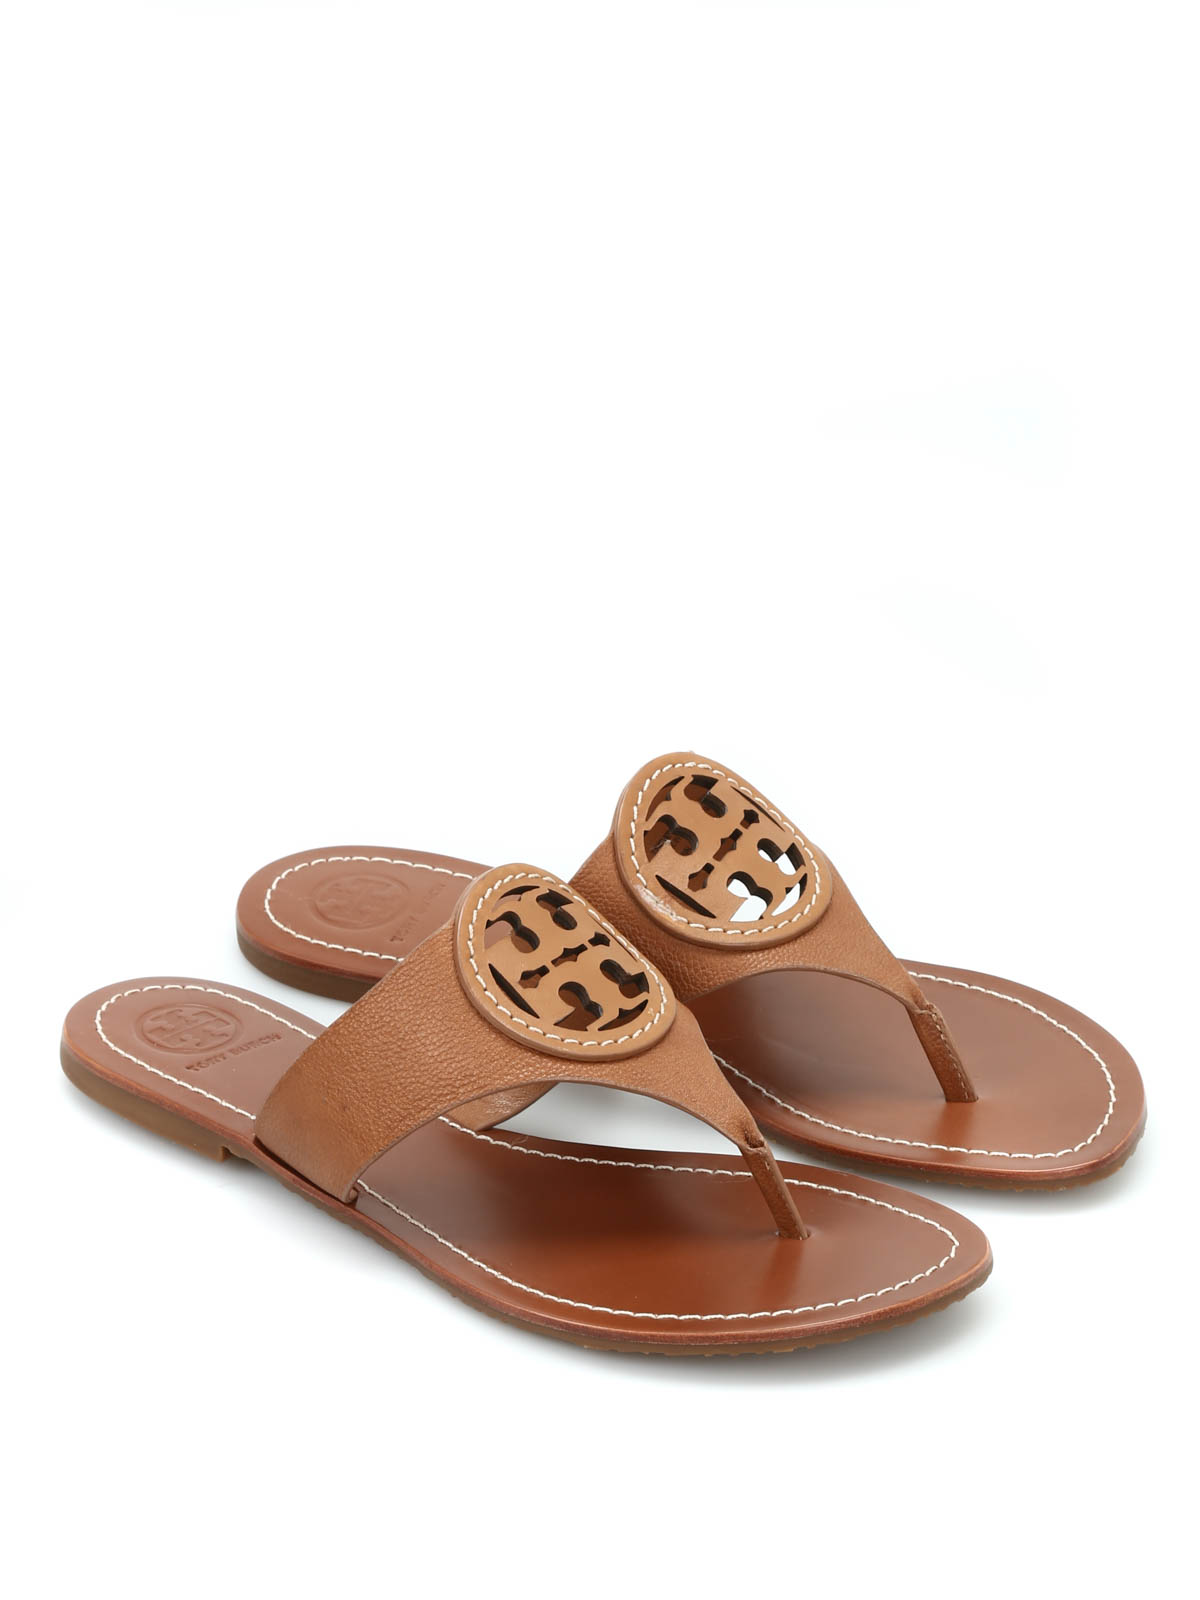 louisa leather thong sandals by tory burch flip flops. Black Bedroom Furniture Sets. Home Design Ideas